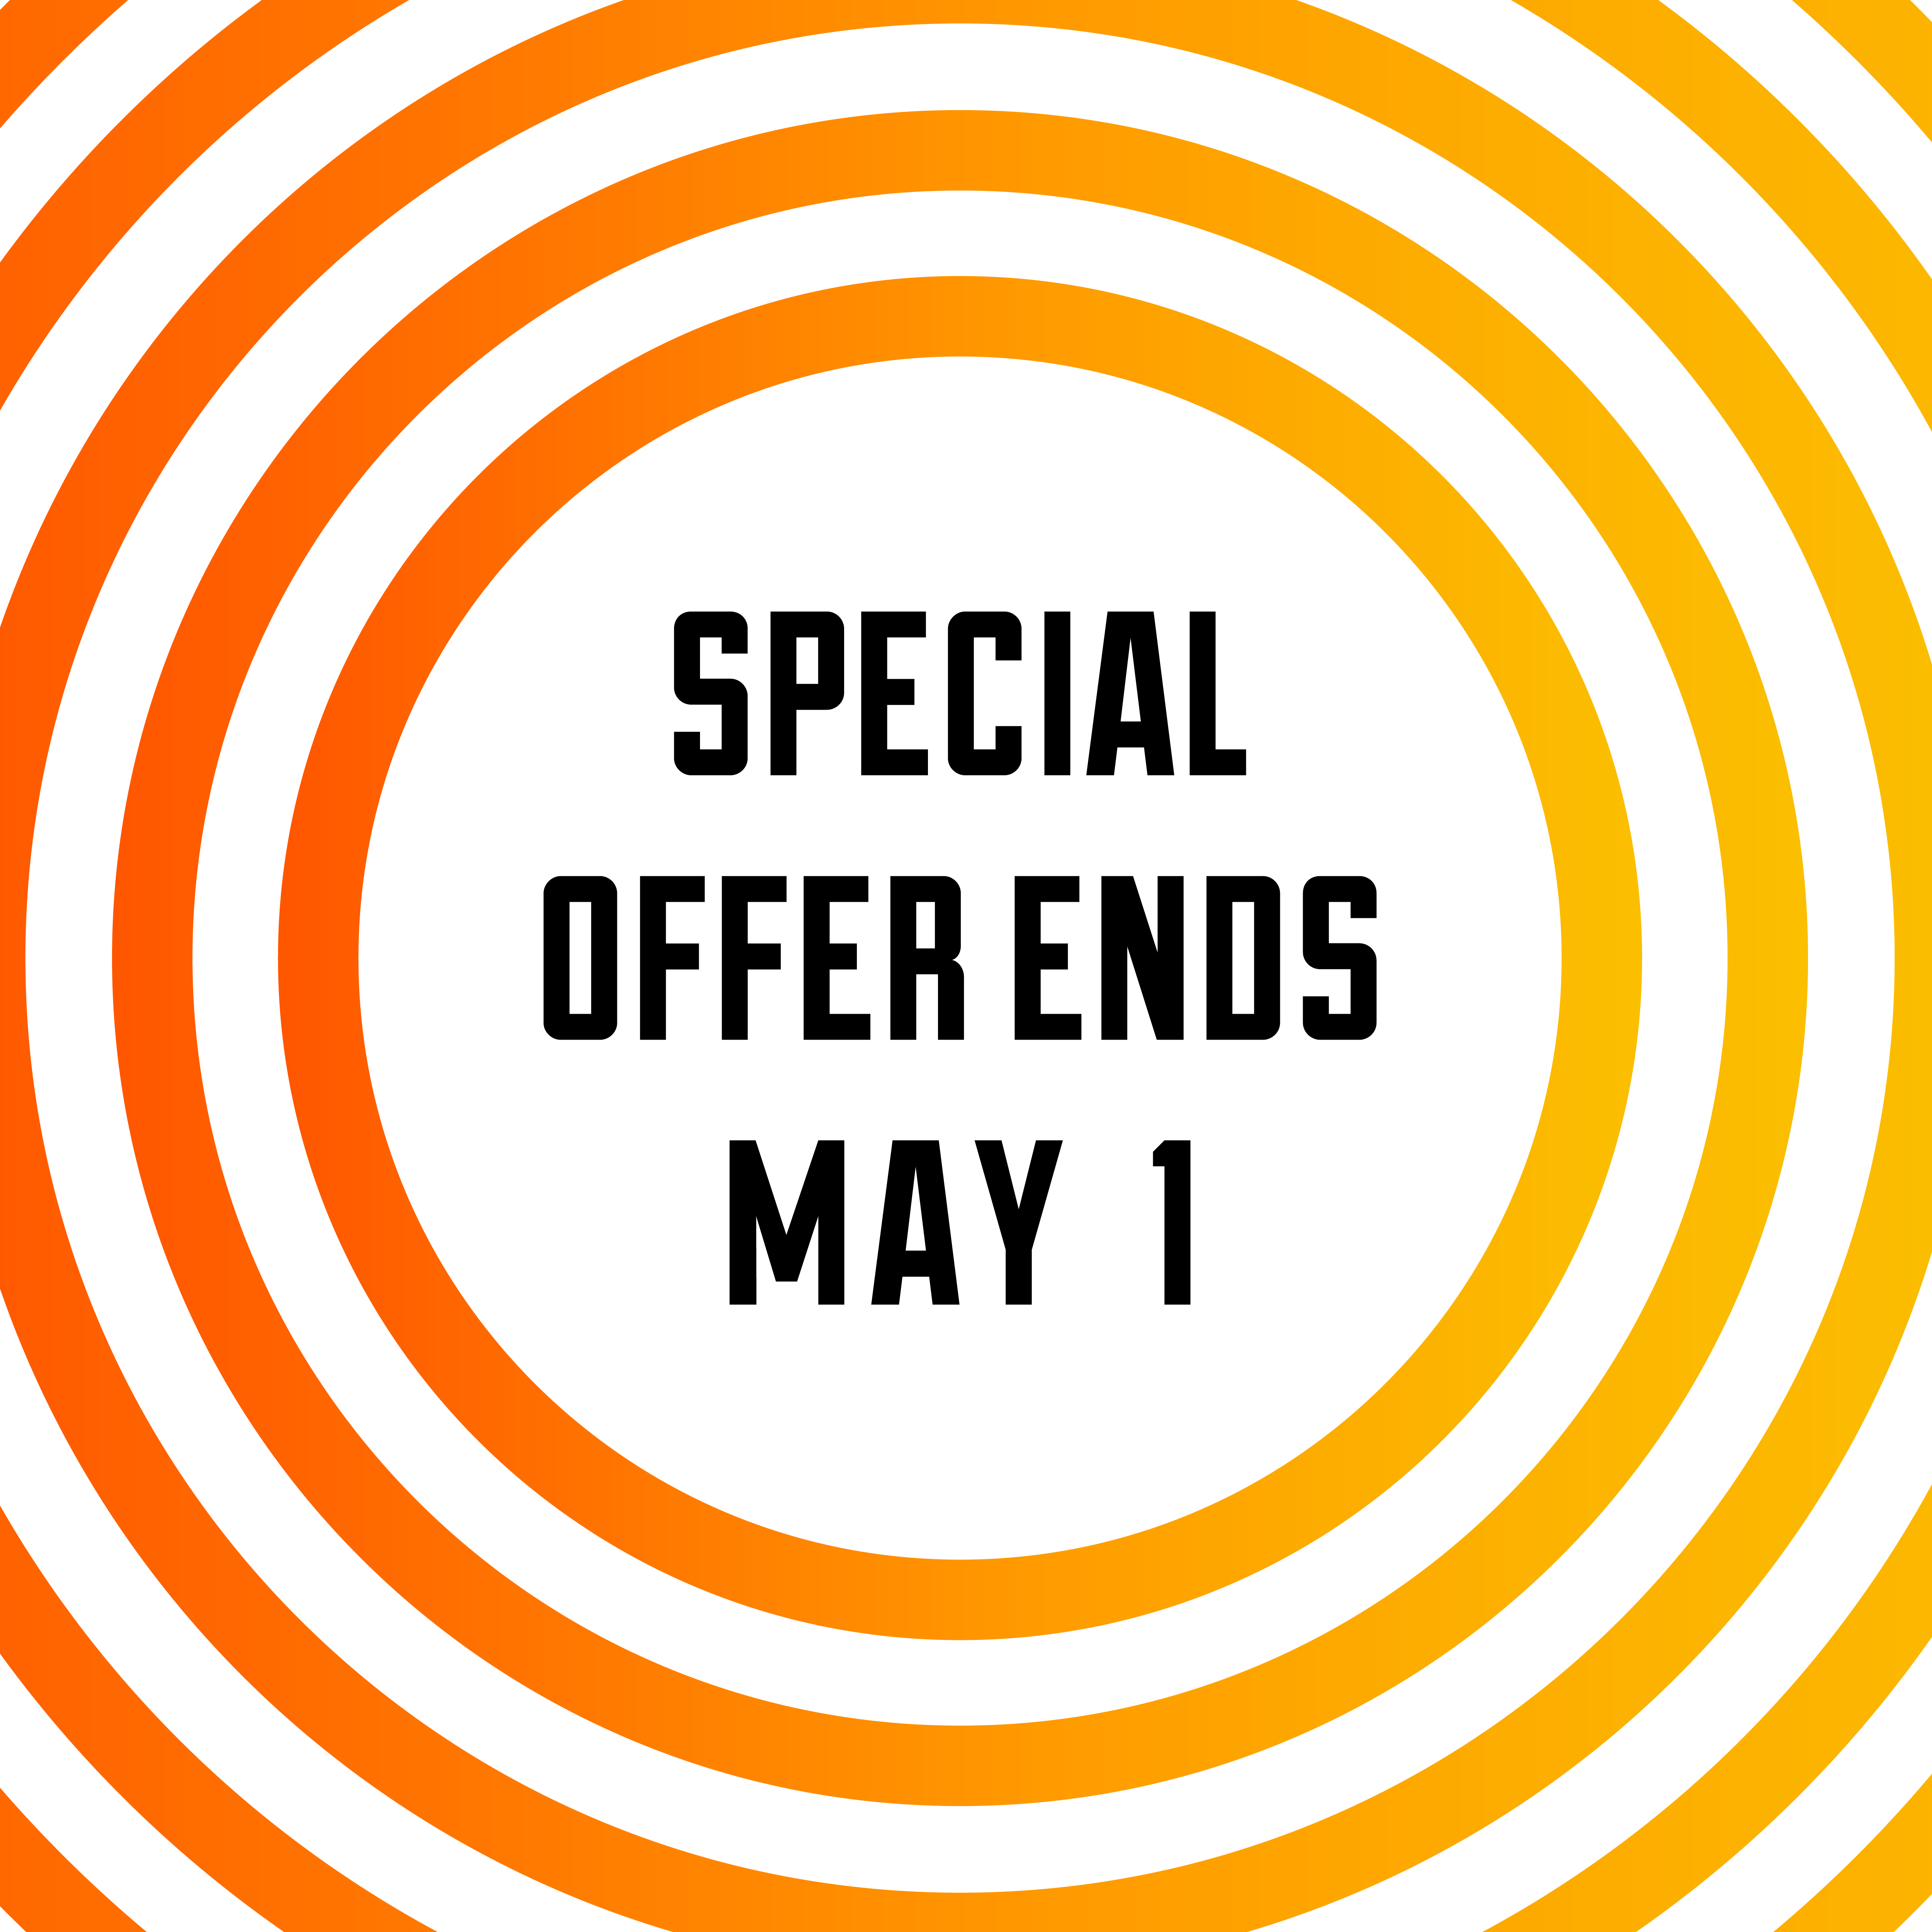 Ends Tomorrow (May 1st): Brand Messaging Special Offer